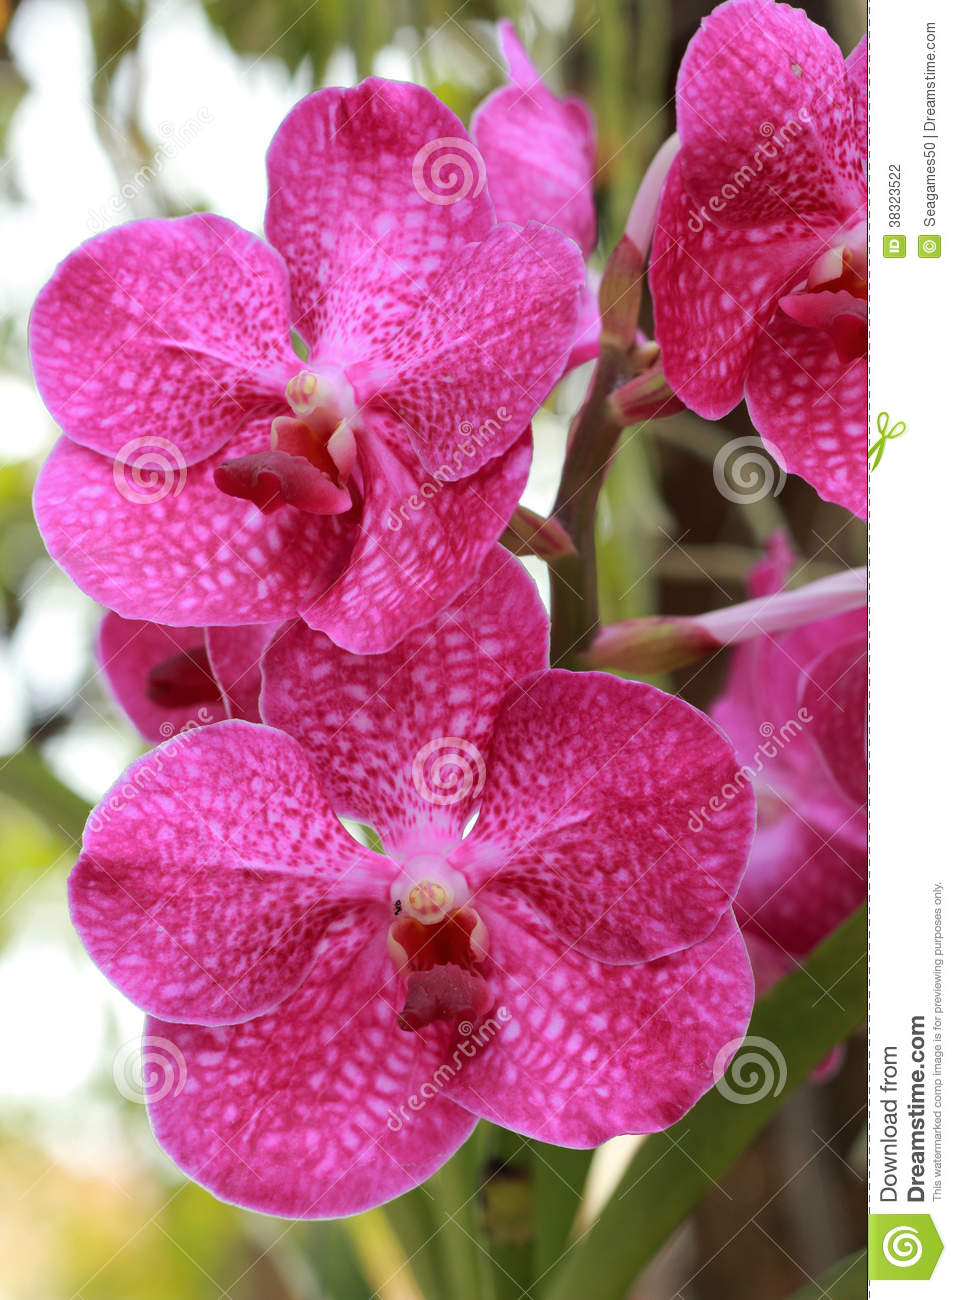 pink orchids close up - photo #15